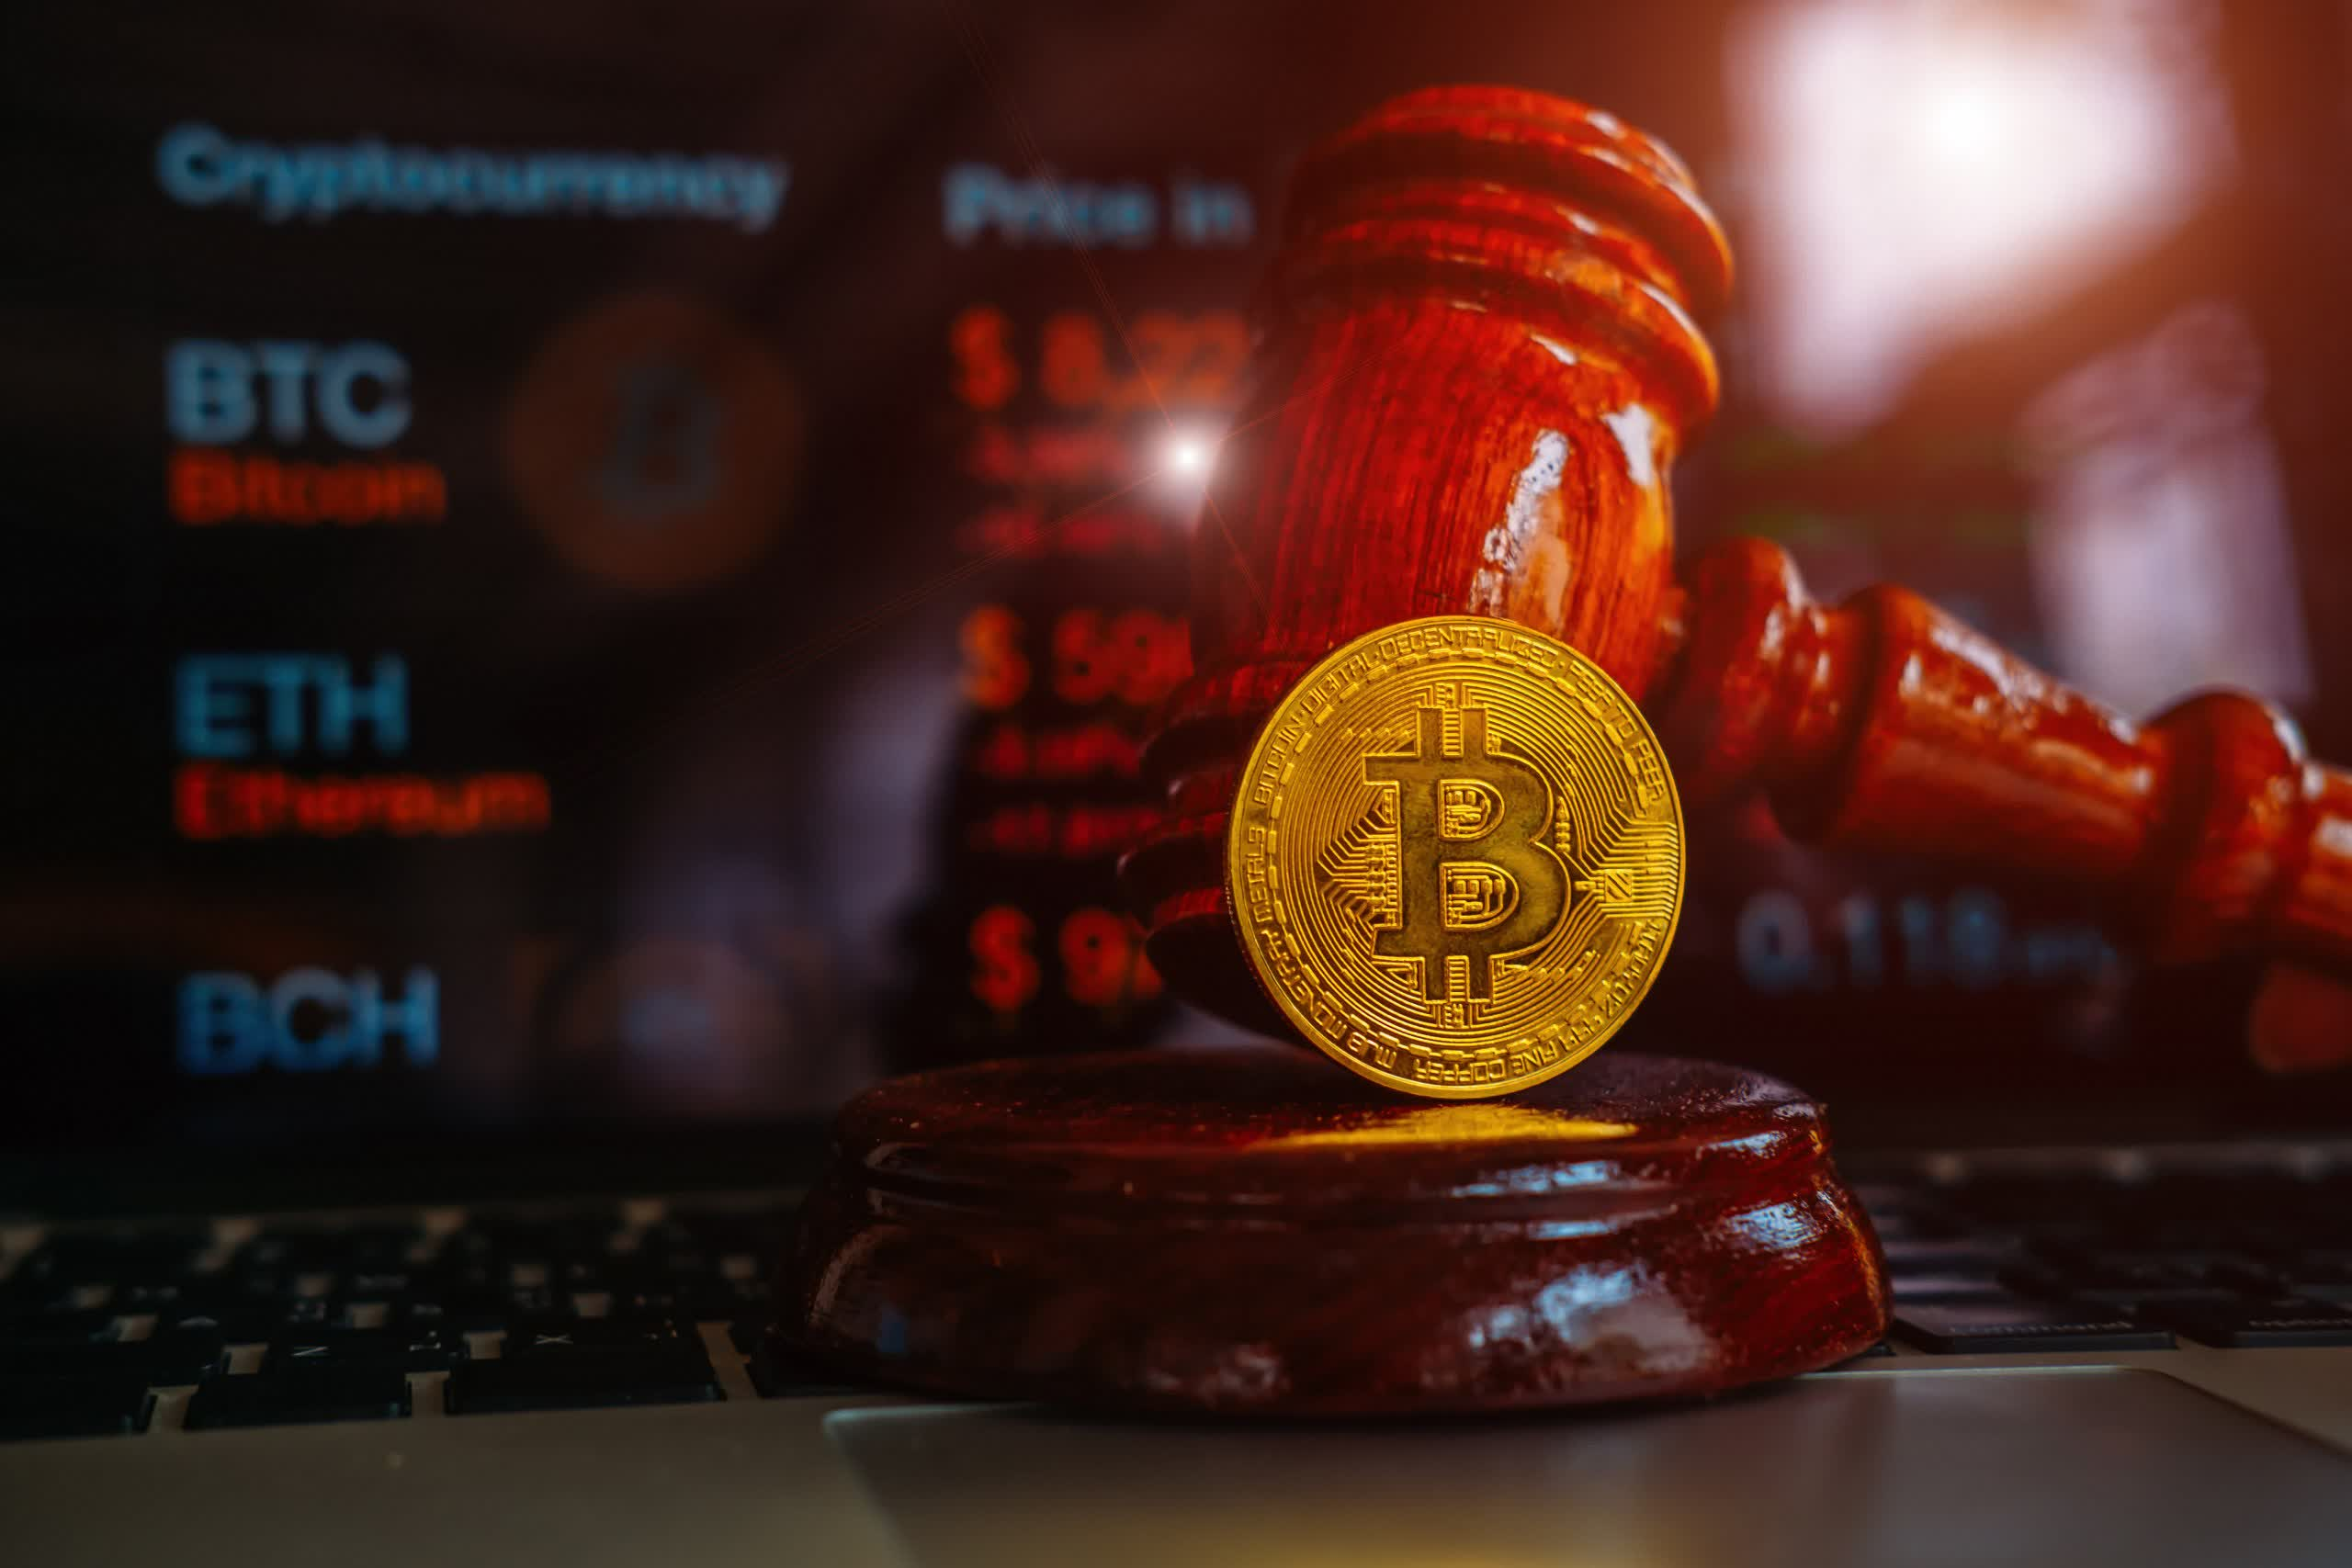 New York looks to ban cryptomining to study environmental impacts